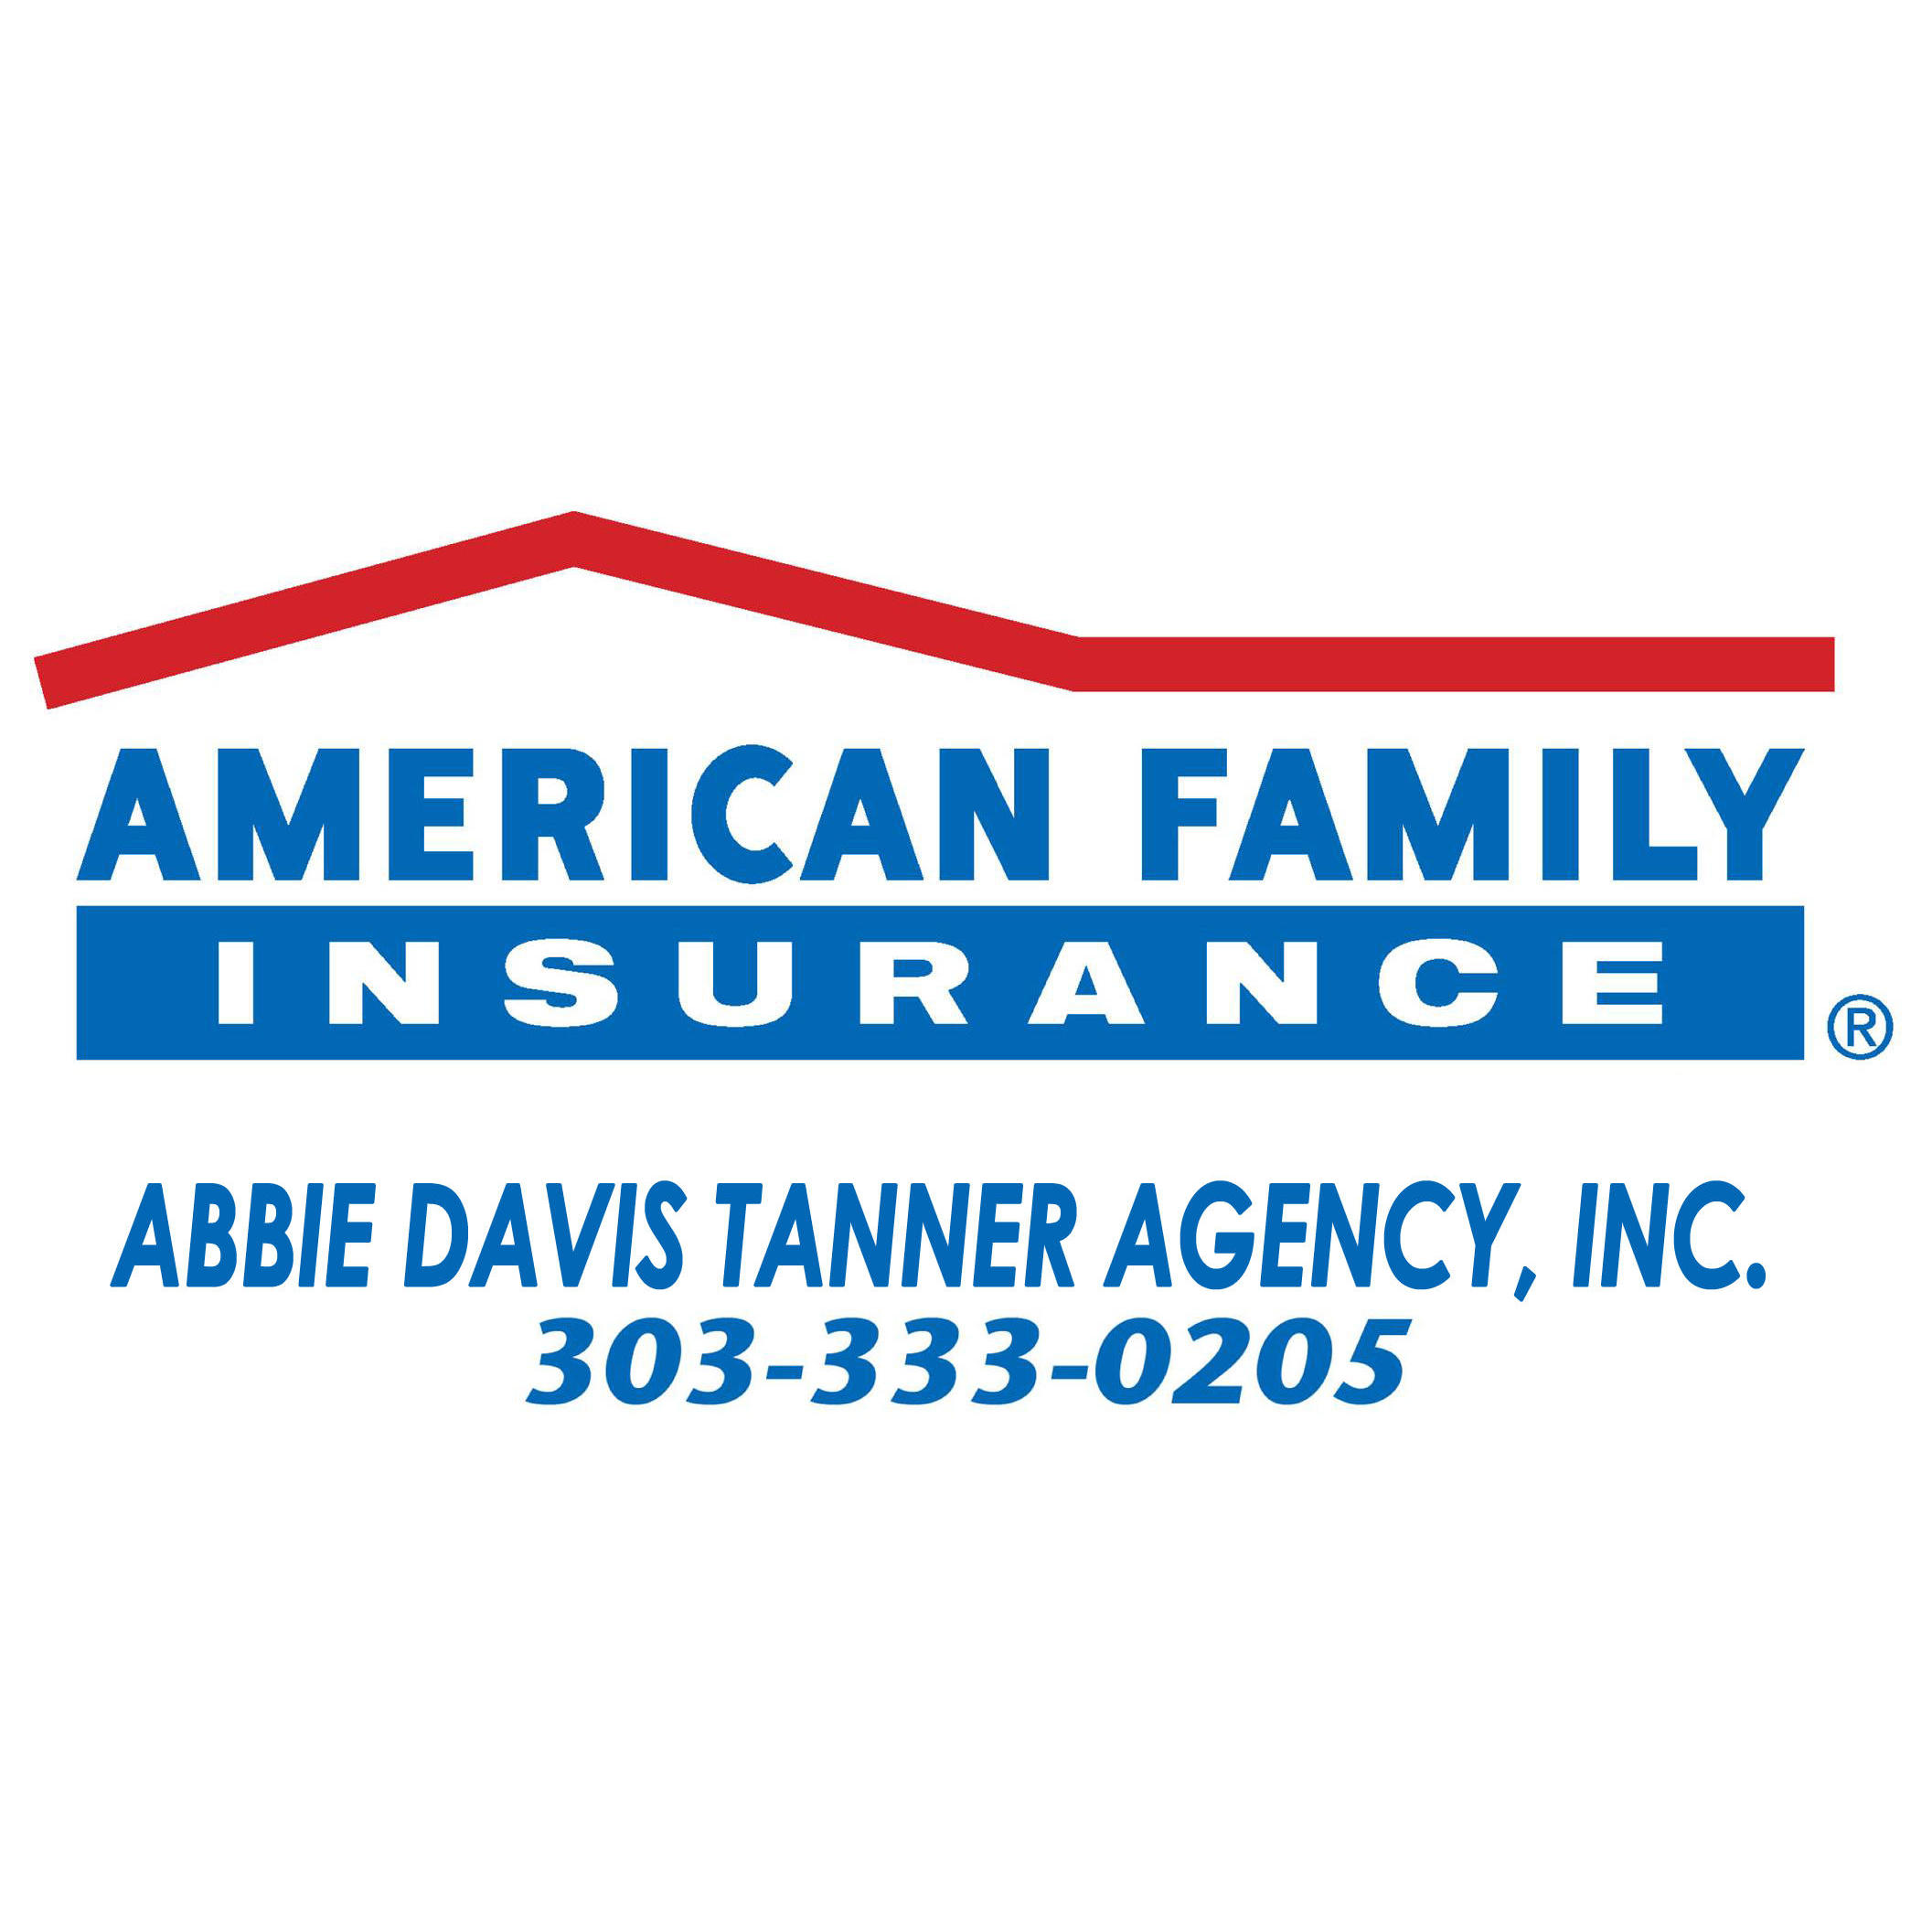 American Family Insurance - Abbie Davis Tanner Agency Inc